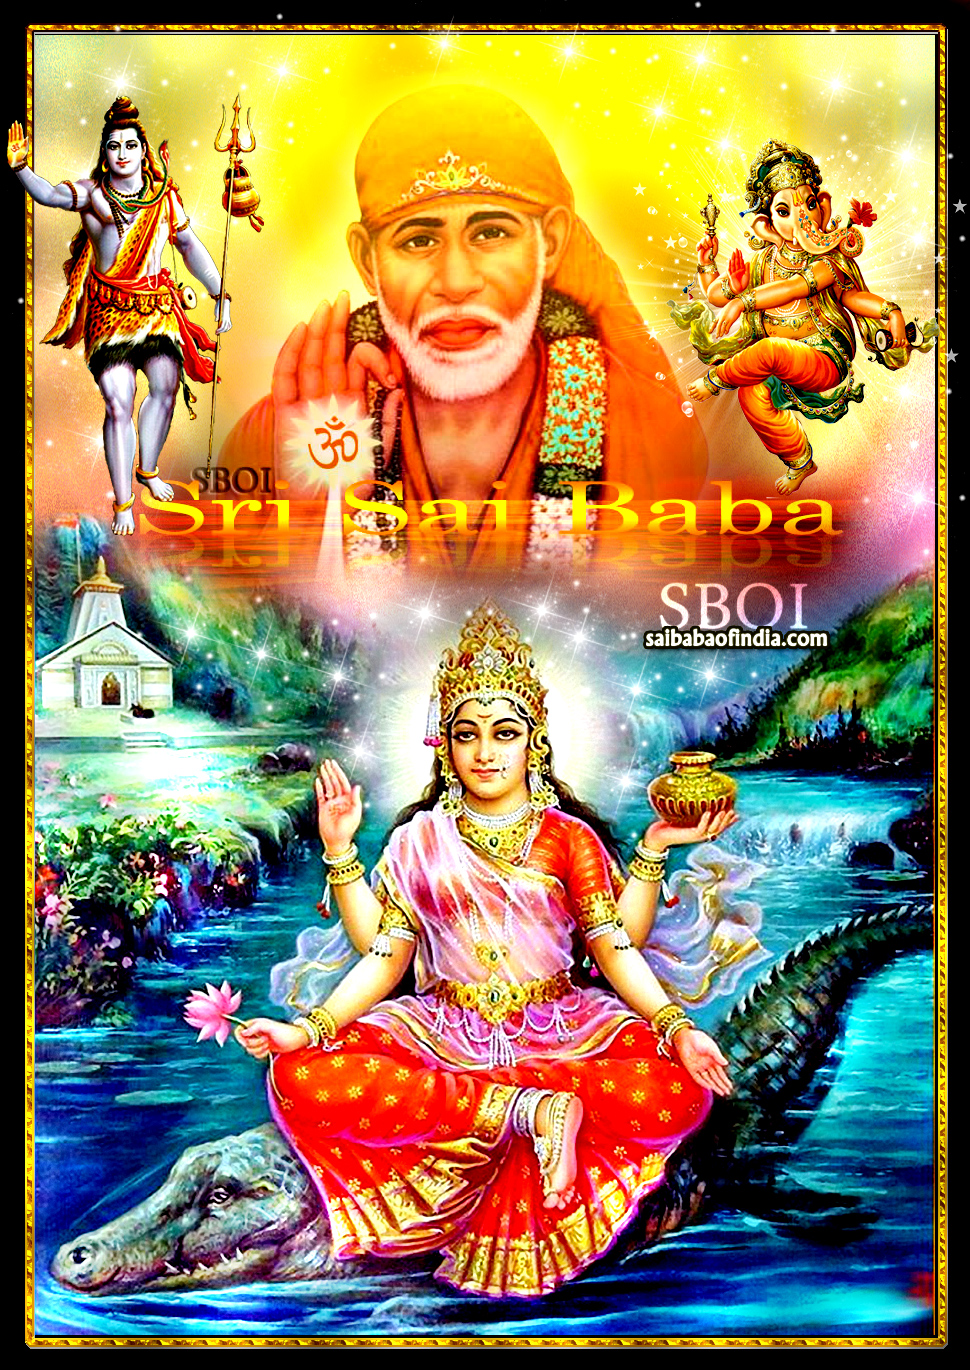 Wonderful Wallpaper Lord Sai Baba - shirdi-sai-baba-thursday-poster-ganga-devi-ma-shiva-ganesha-jpg-%C3%97-wallpaper-wp30010477  Photograph_511434.jpg